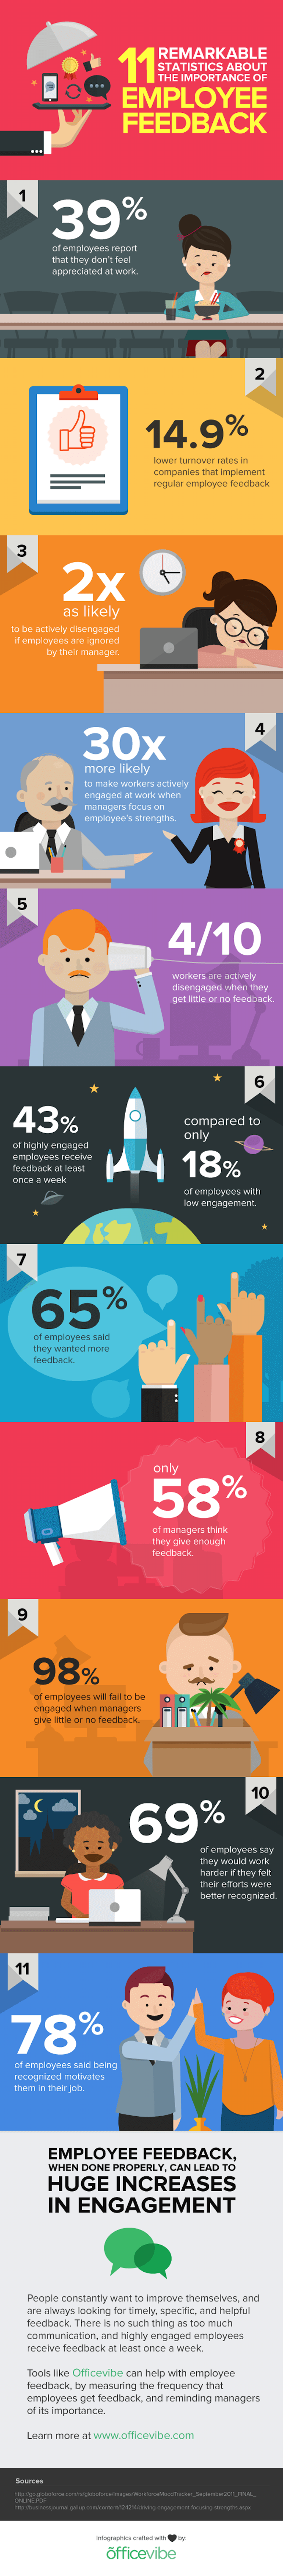 employee-feedback-infographic-1